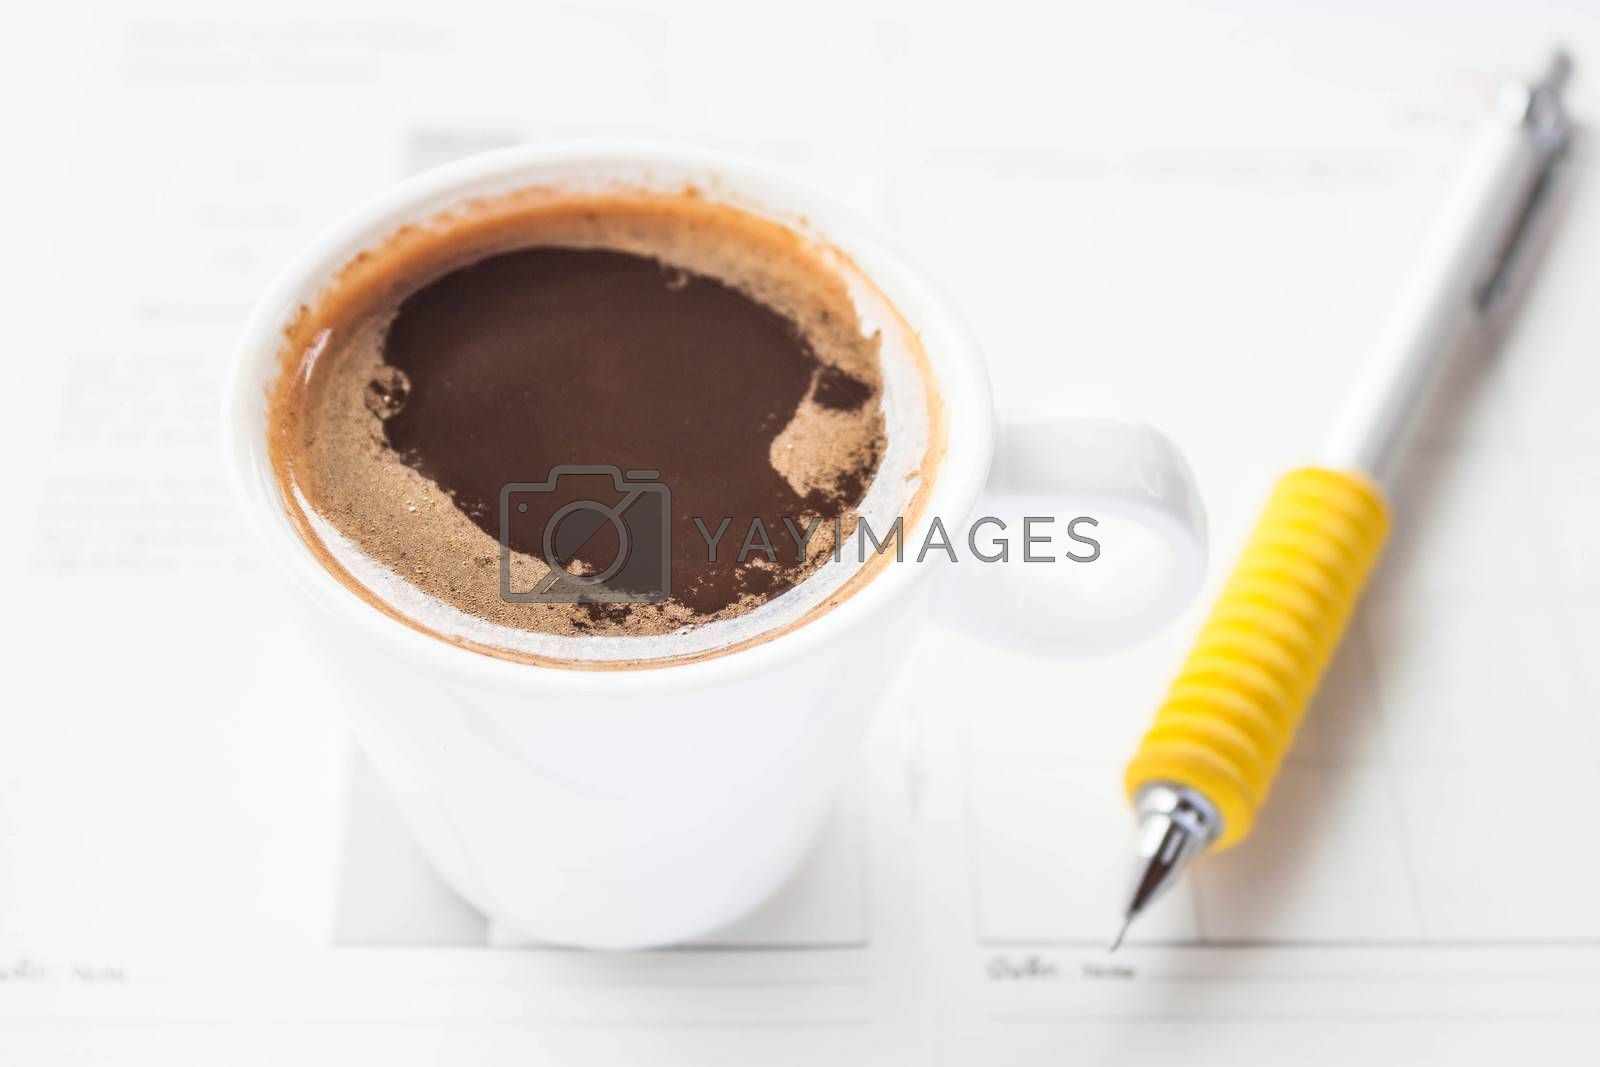 Work paper and pencil with espresso shot